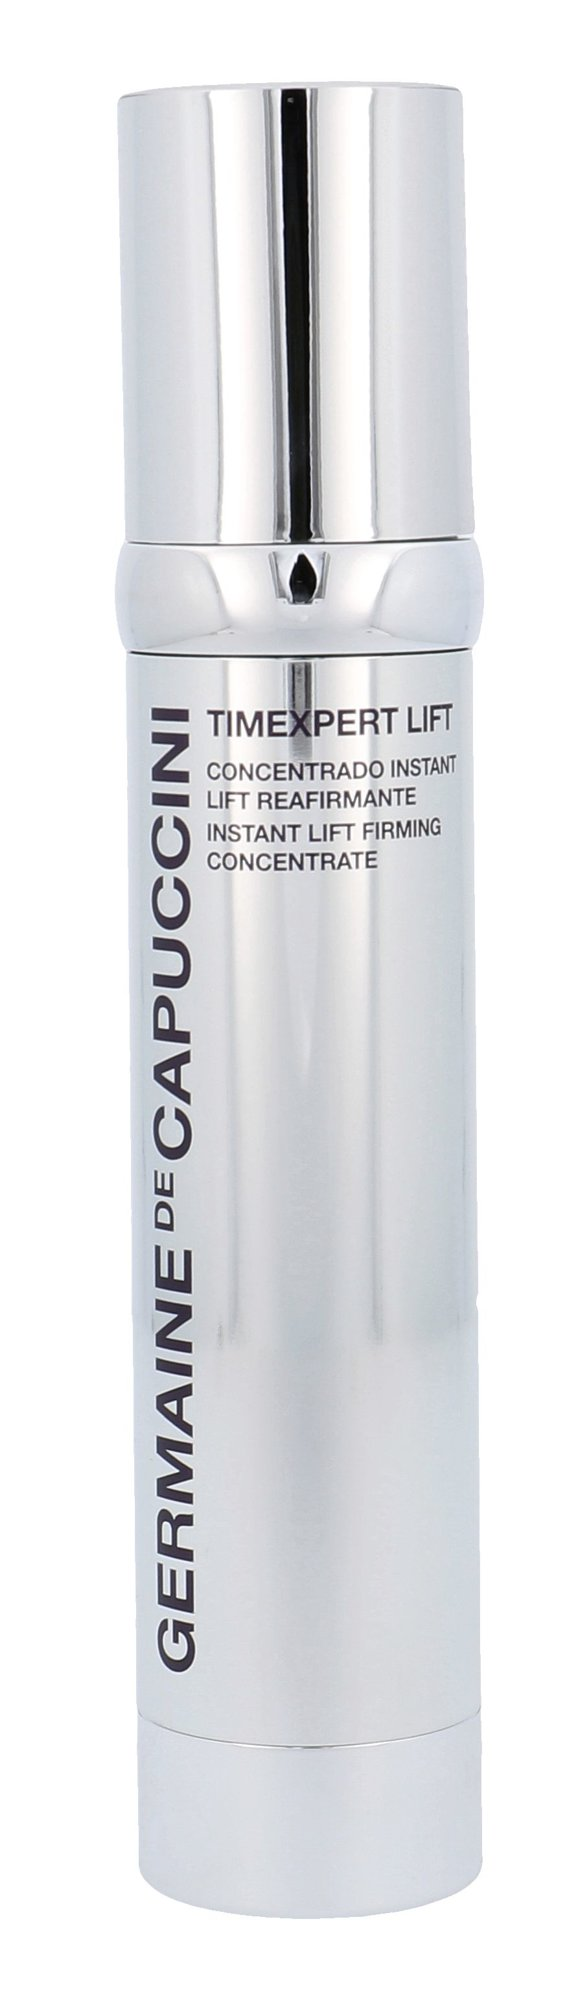 Germaine de Capuccini Timexpert Lift Cosmetic 50ml  Instant Lift Firming Concentrate